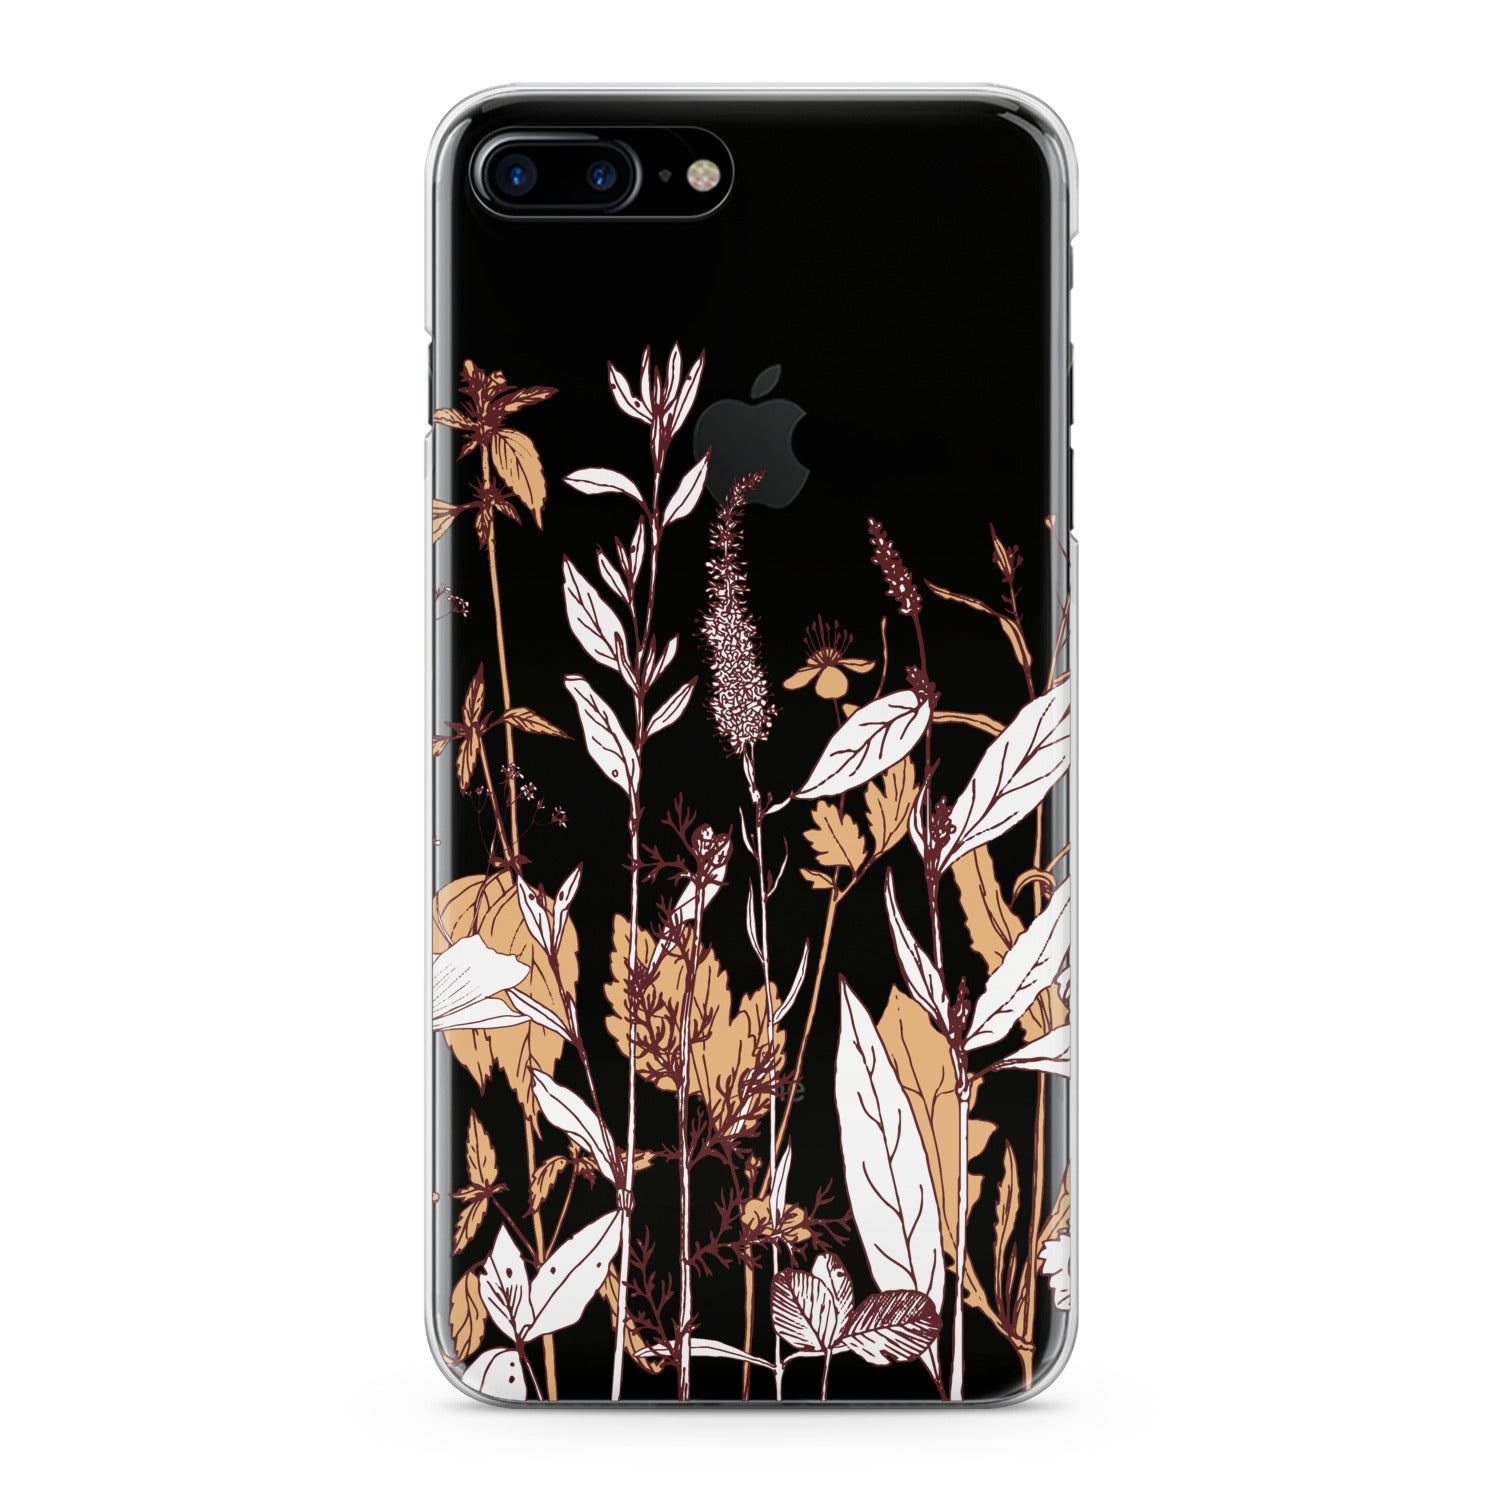 Lex Altern Autumn Wildflowers Phone Case for your iPhone & Android phone.